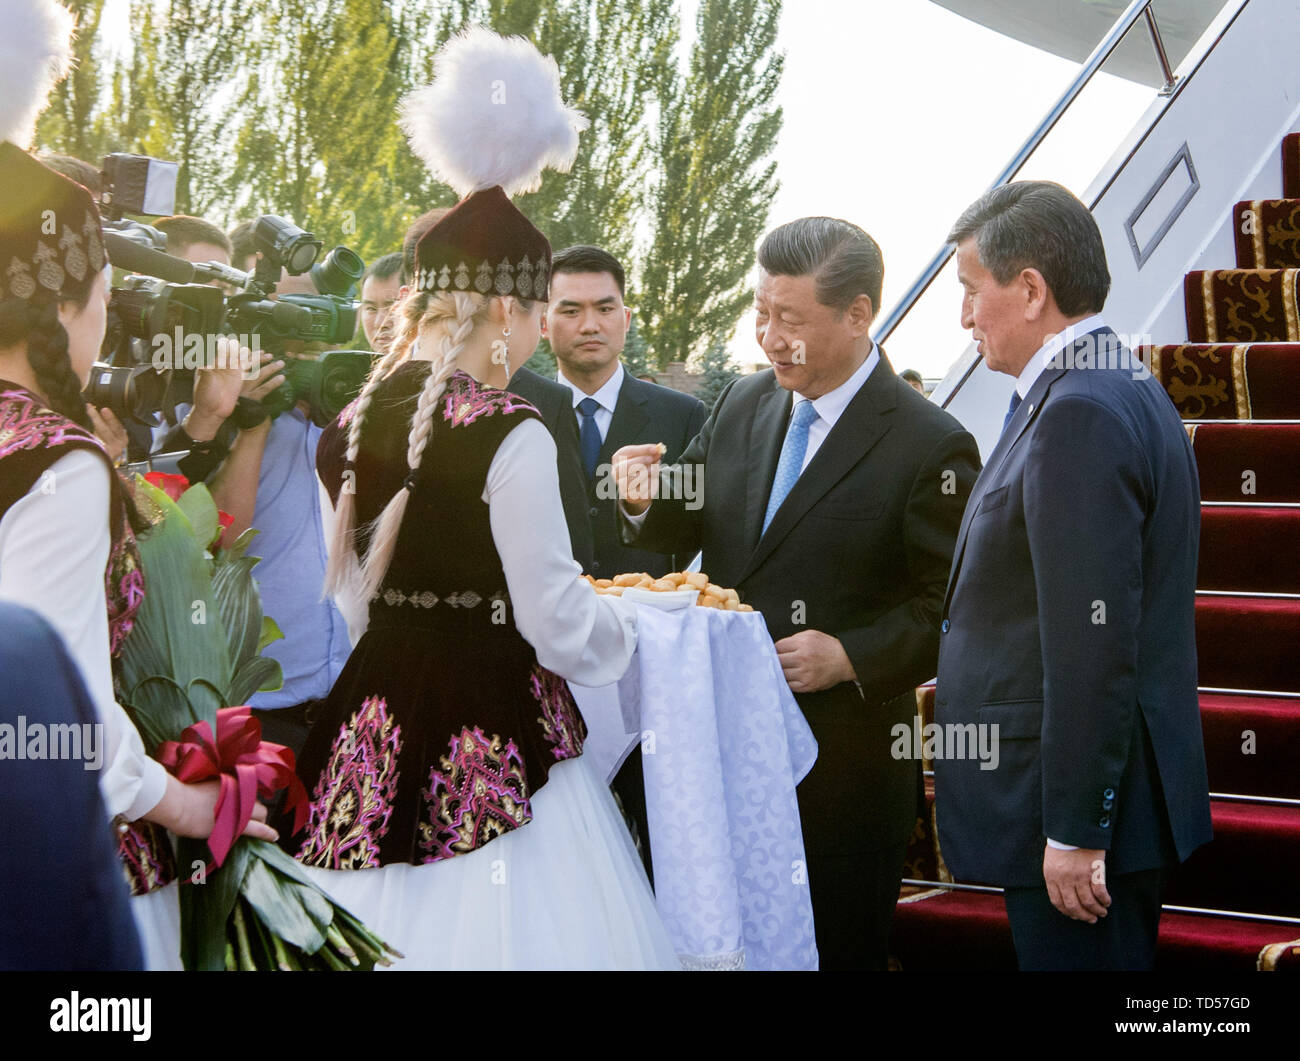 Bishkek, Kyrgyzstan. 12th June, 2019. Chinese President Xi Jinping arrives in Bishkek, Kyrgyzstan, June 12, 2019. Kyrgyz young people present flowers, bread and honey to Xi as a way to welcome distinguished guest. Xi arrived here Wednesday for a state visit to Kyrgyzstan and the 19th Shanghai Cooperation Organization (SCO) summit. Credit: Li Xueren/Xinhua/Alamy Live News - Stock Image